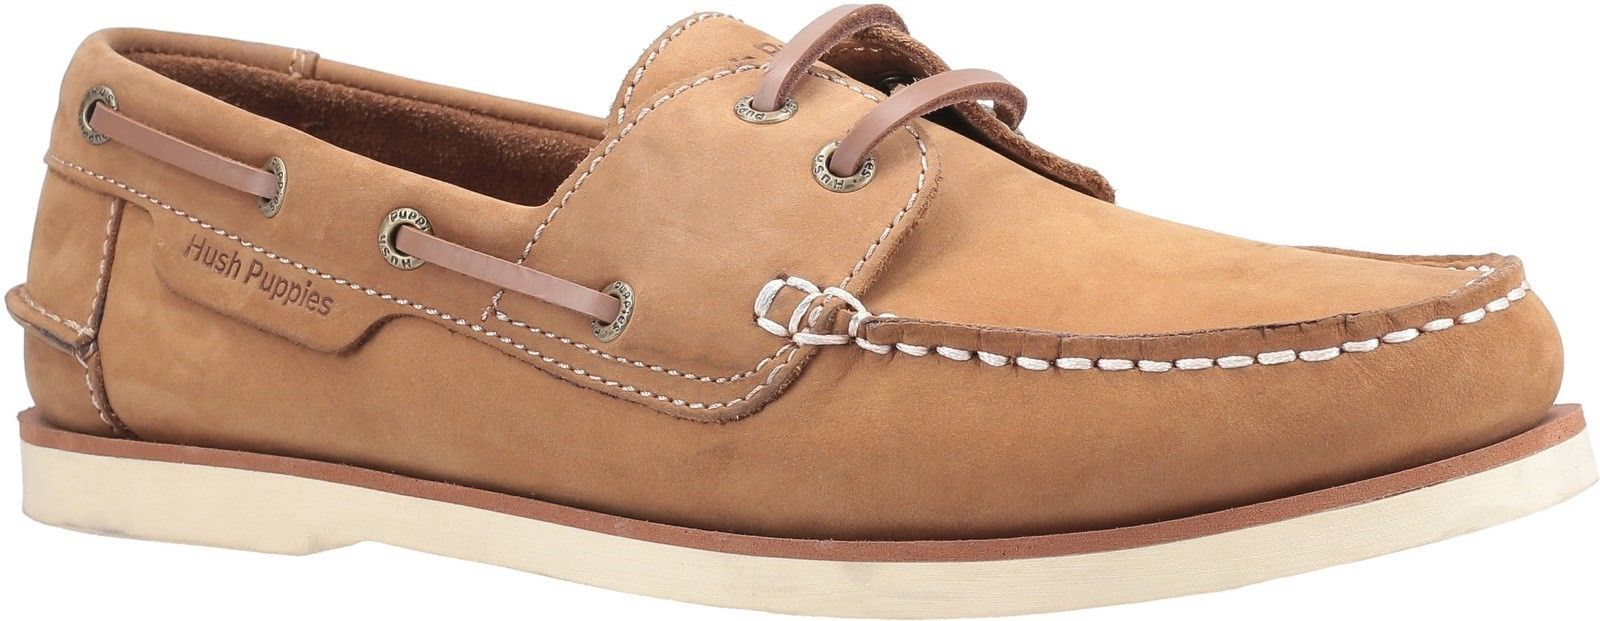 Henry Classic Lace Up Shoe